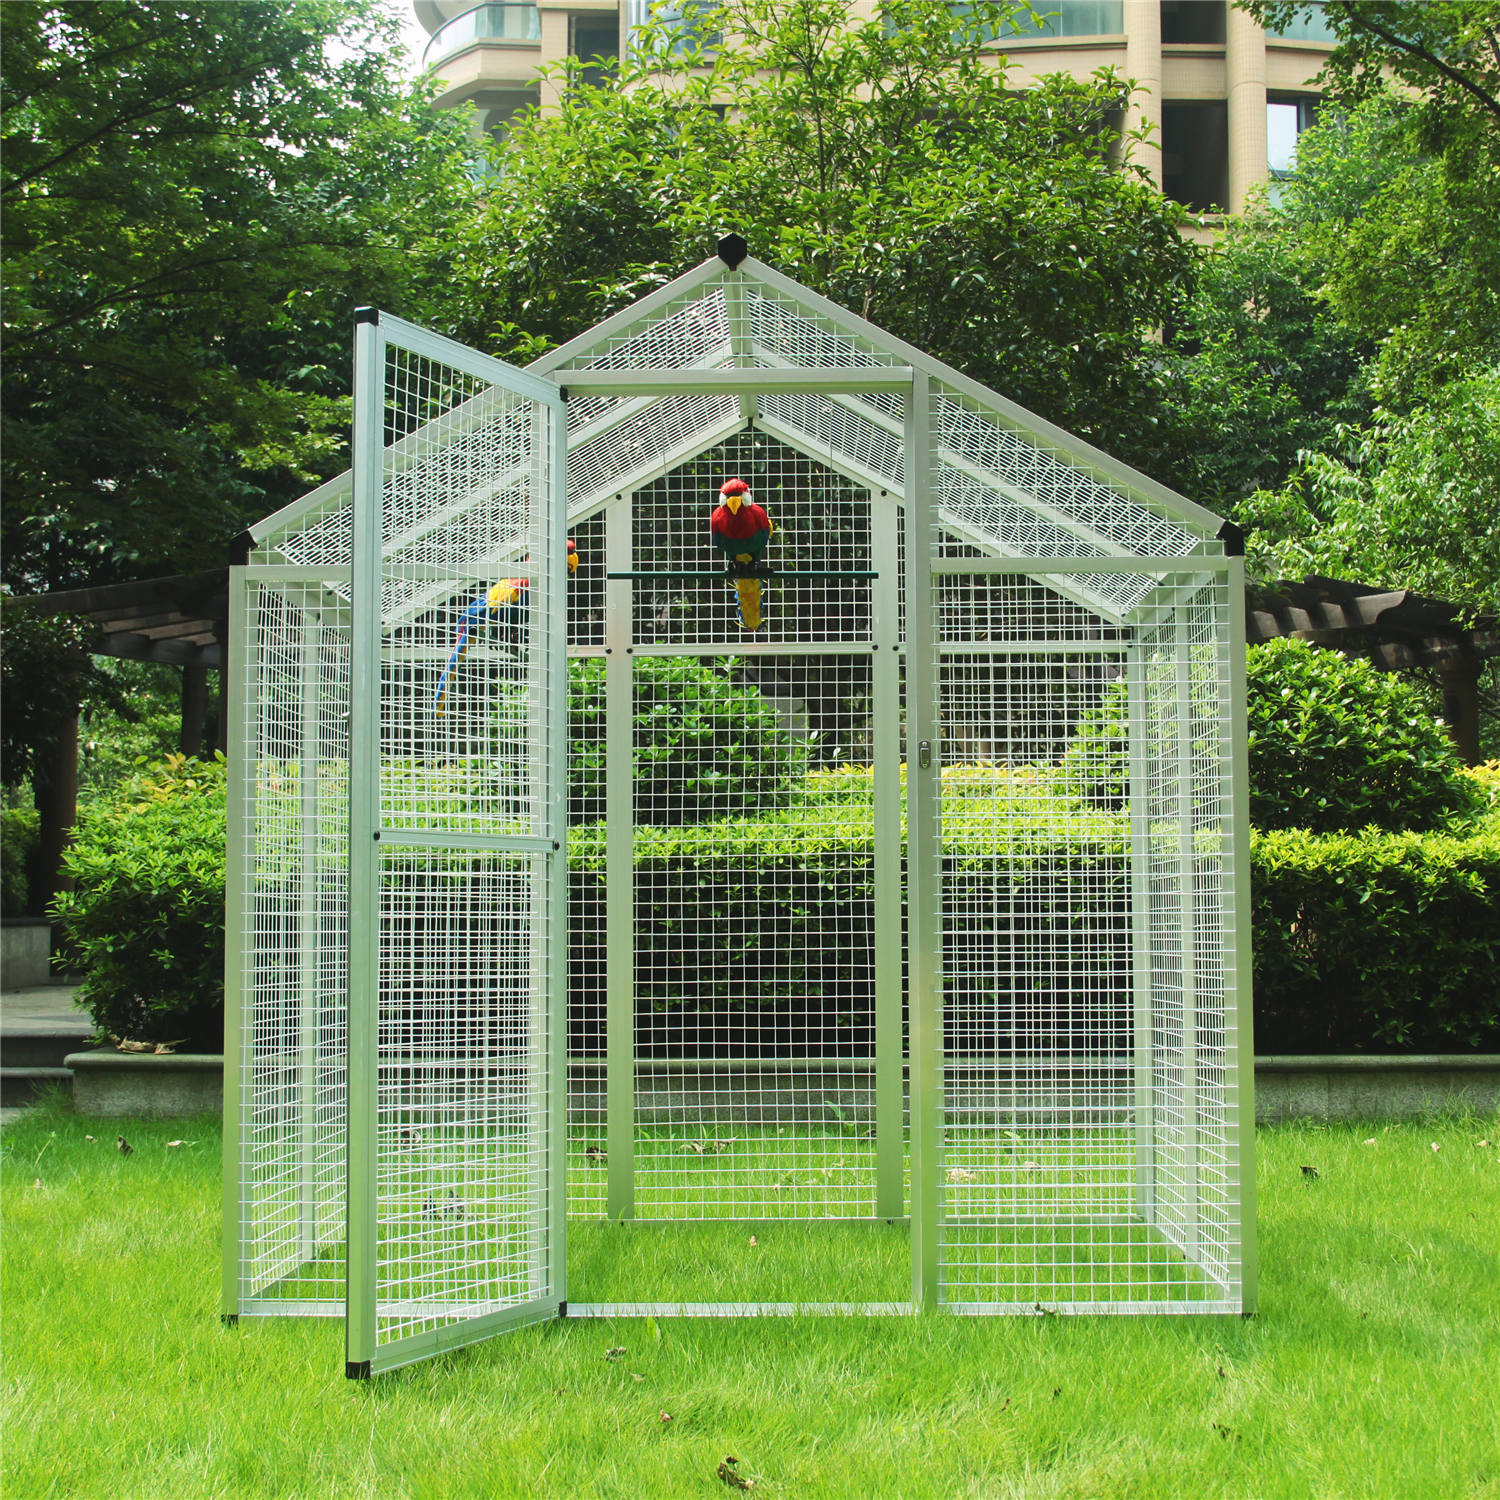 76''H Large Aluminum Bird Aviary Cage Walk In Aviary Parrot Play Top Parrot Finch Cage Macaw Cockatoo Pet Supplies White